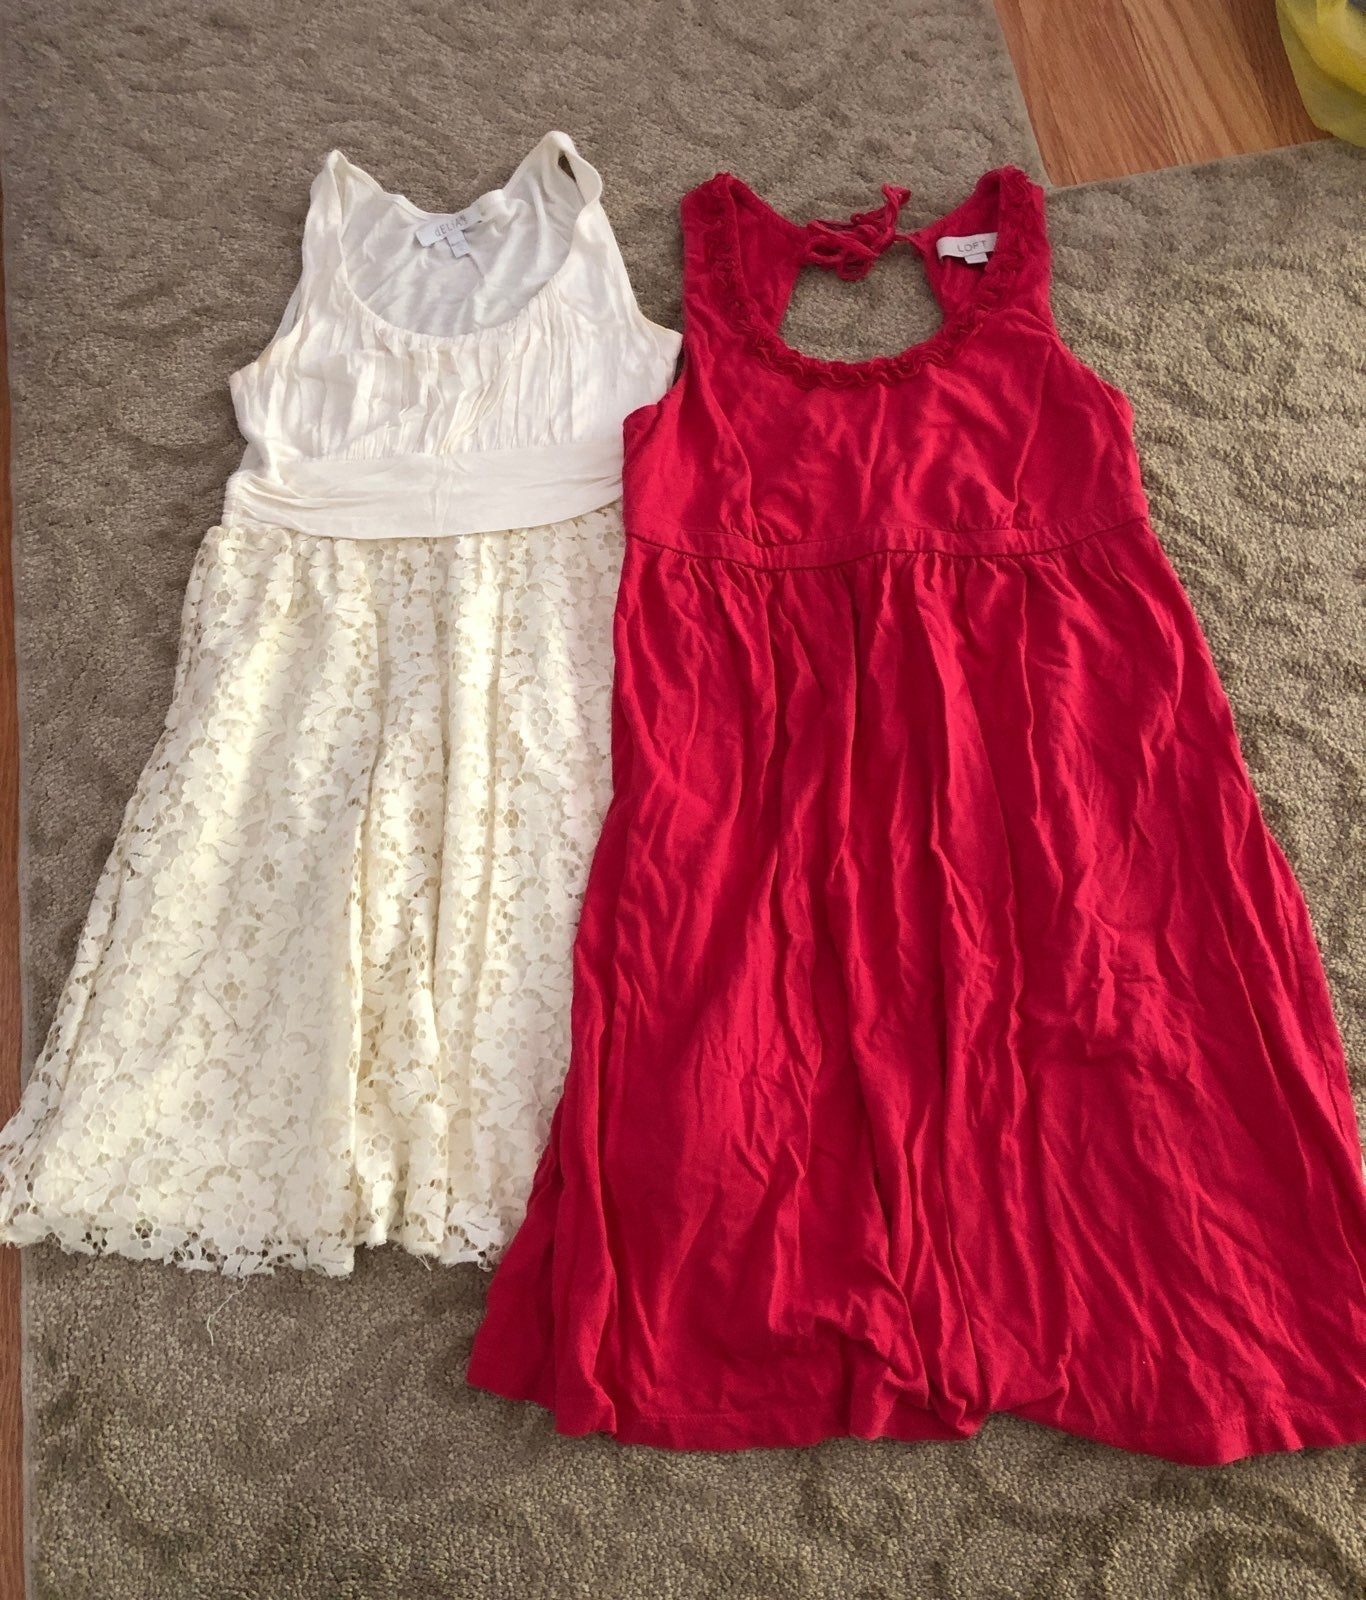 Dress - two size S juniors or womens